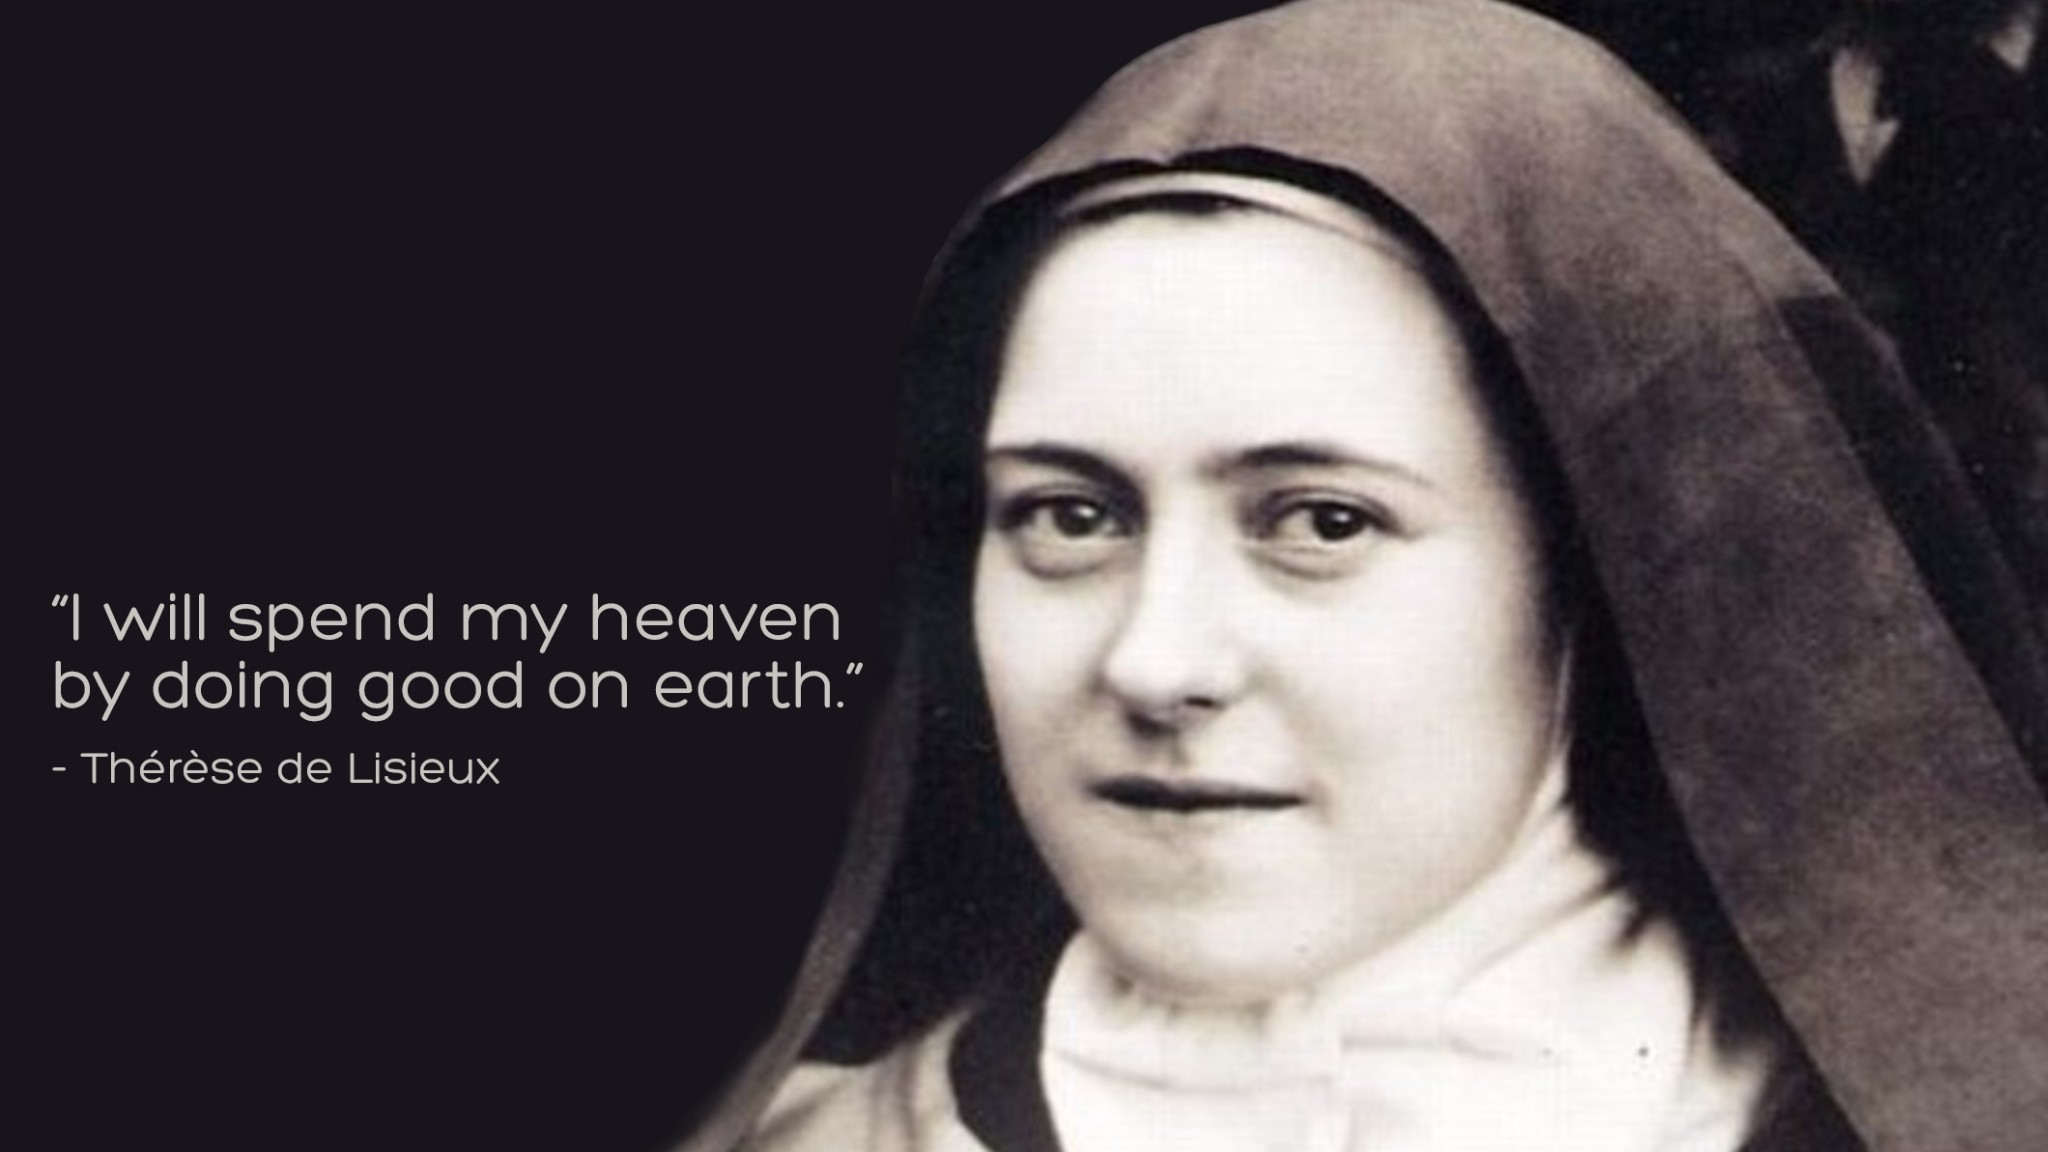 St Therese De Lisieux Quotes QuotesGram